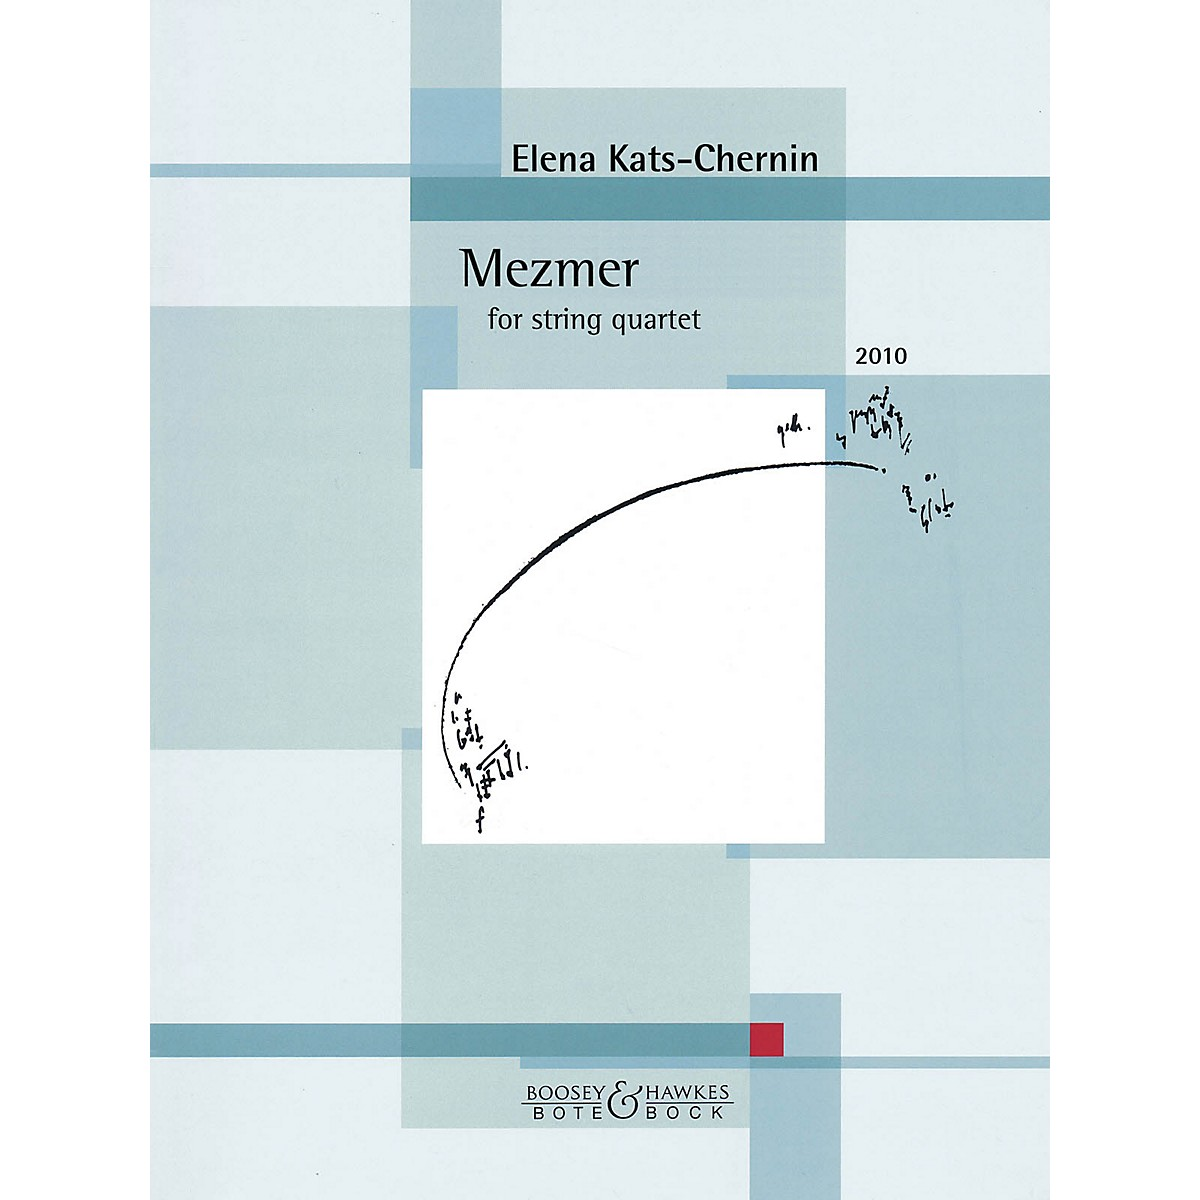 Bote & Bock Mezmer (2010) (for String Quartet) Boosey & Hawkes Chamber Music Series Softcover by Elena Kats-Chernin